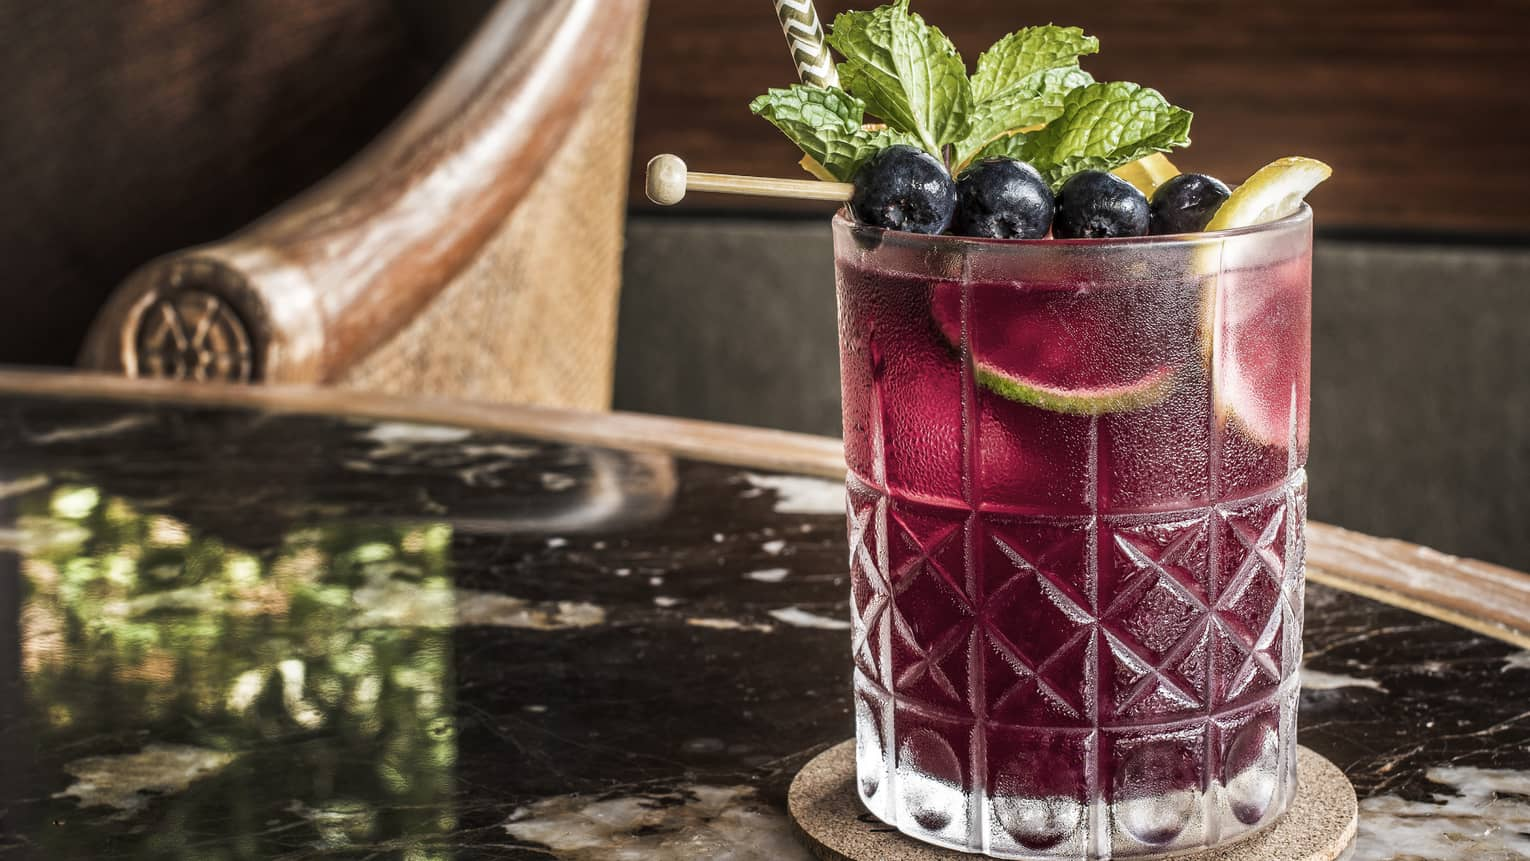 Spanish sangria in a glass with blueberry garnish